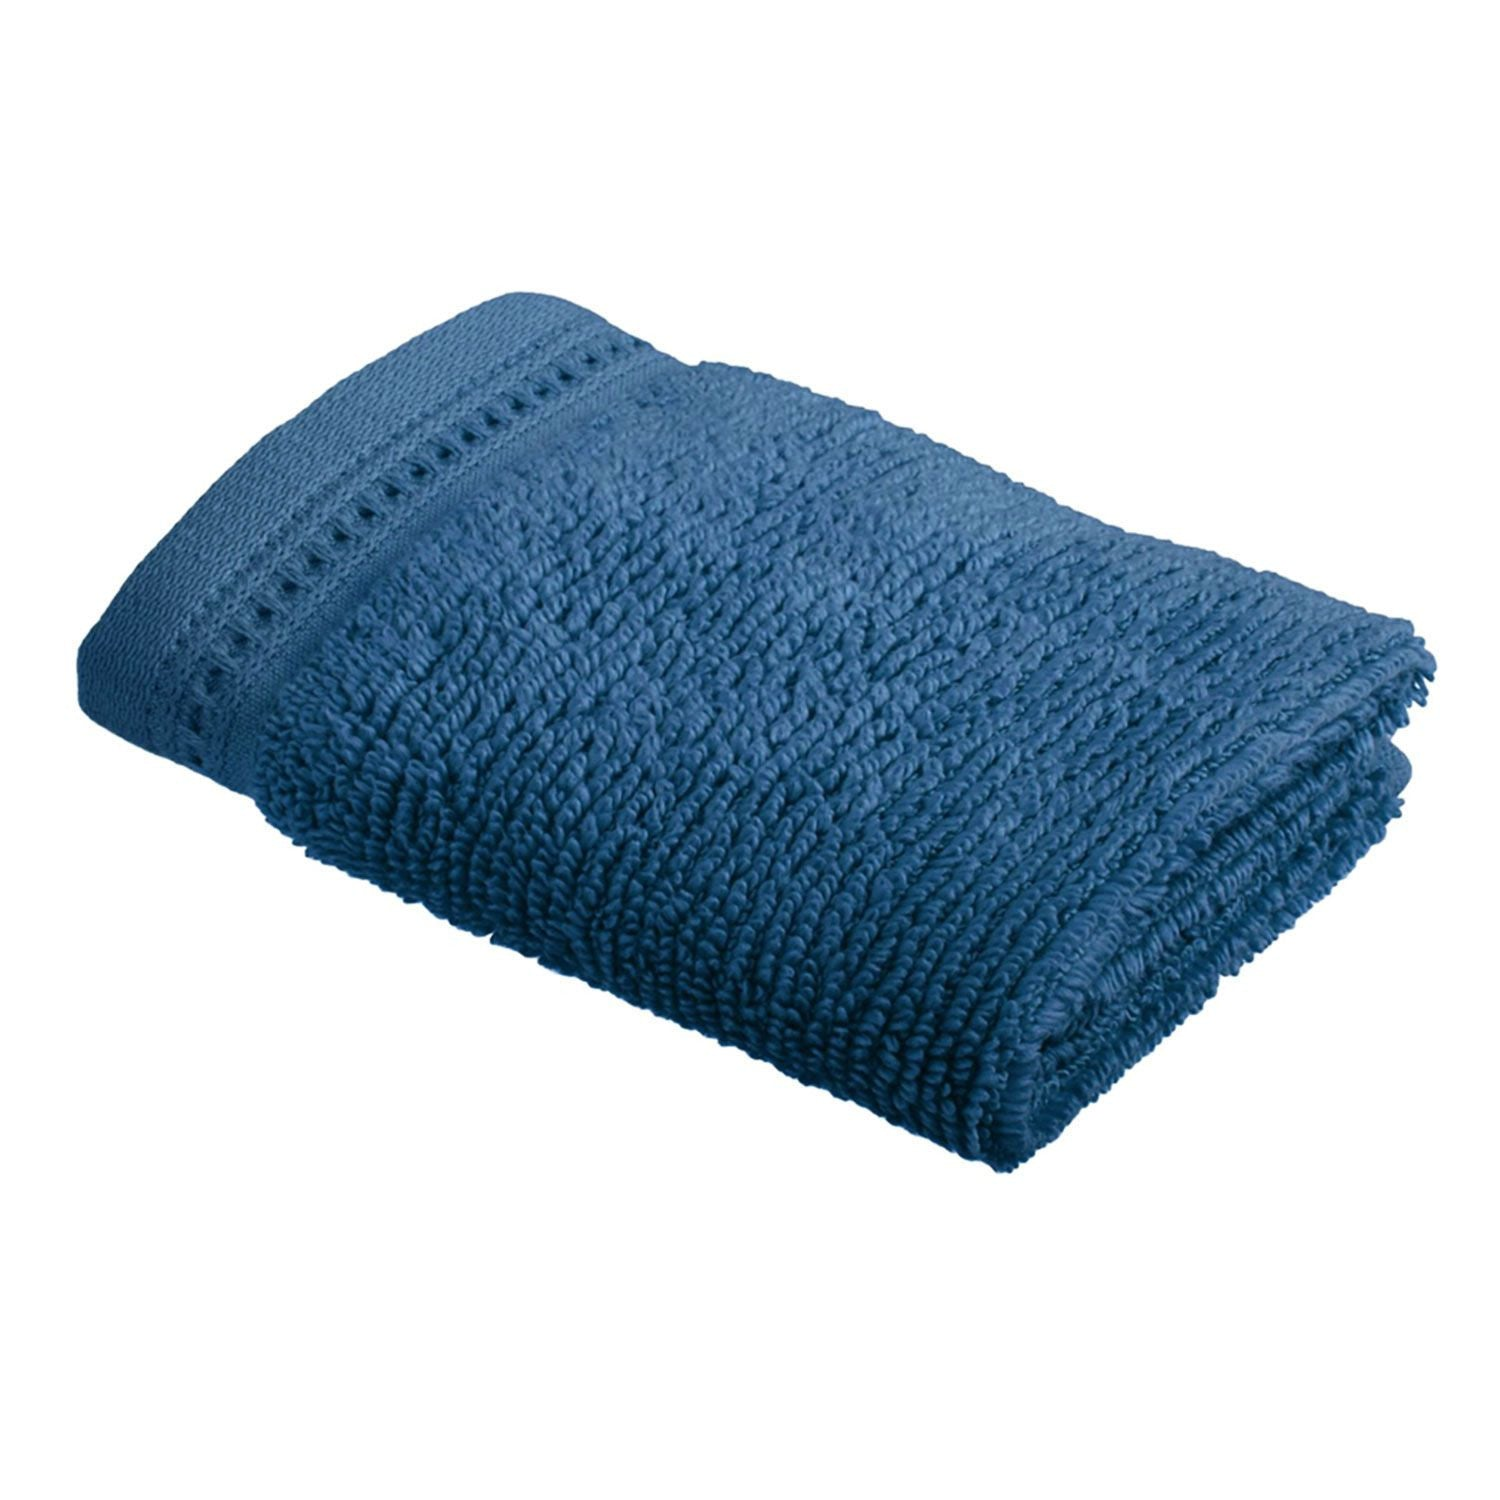 Crowning Touch Wash Cloth - Aqua